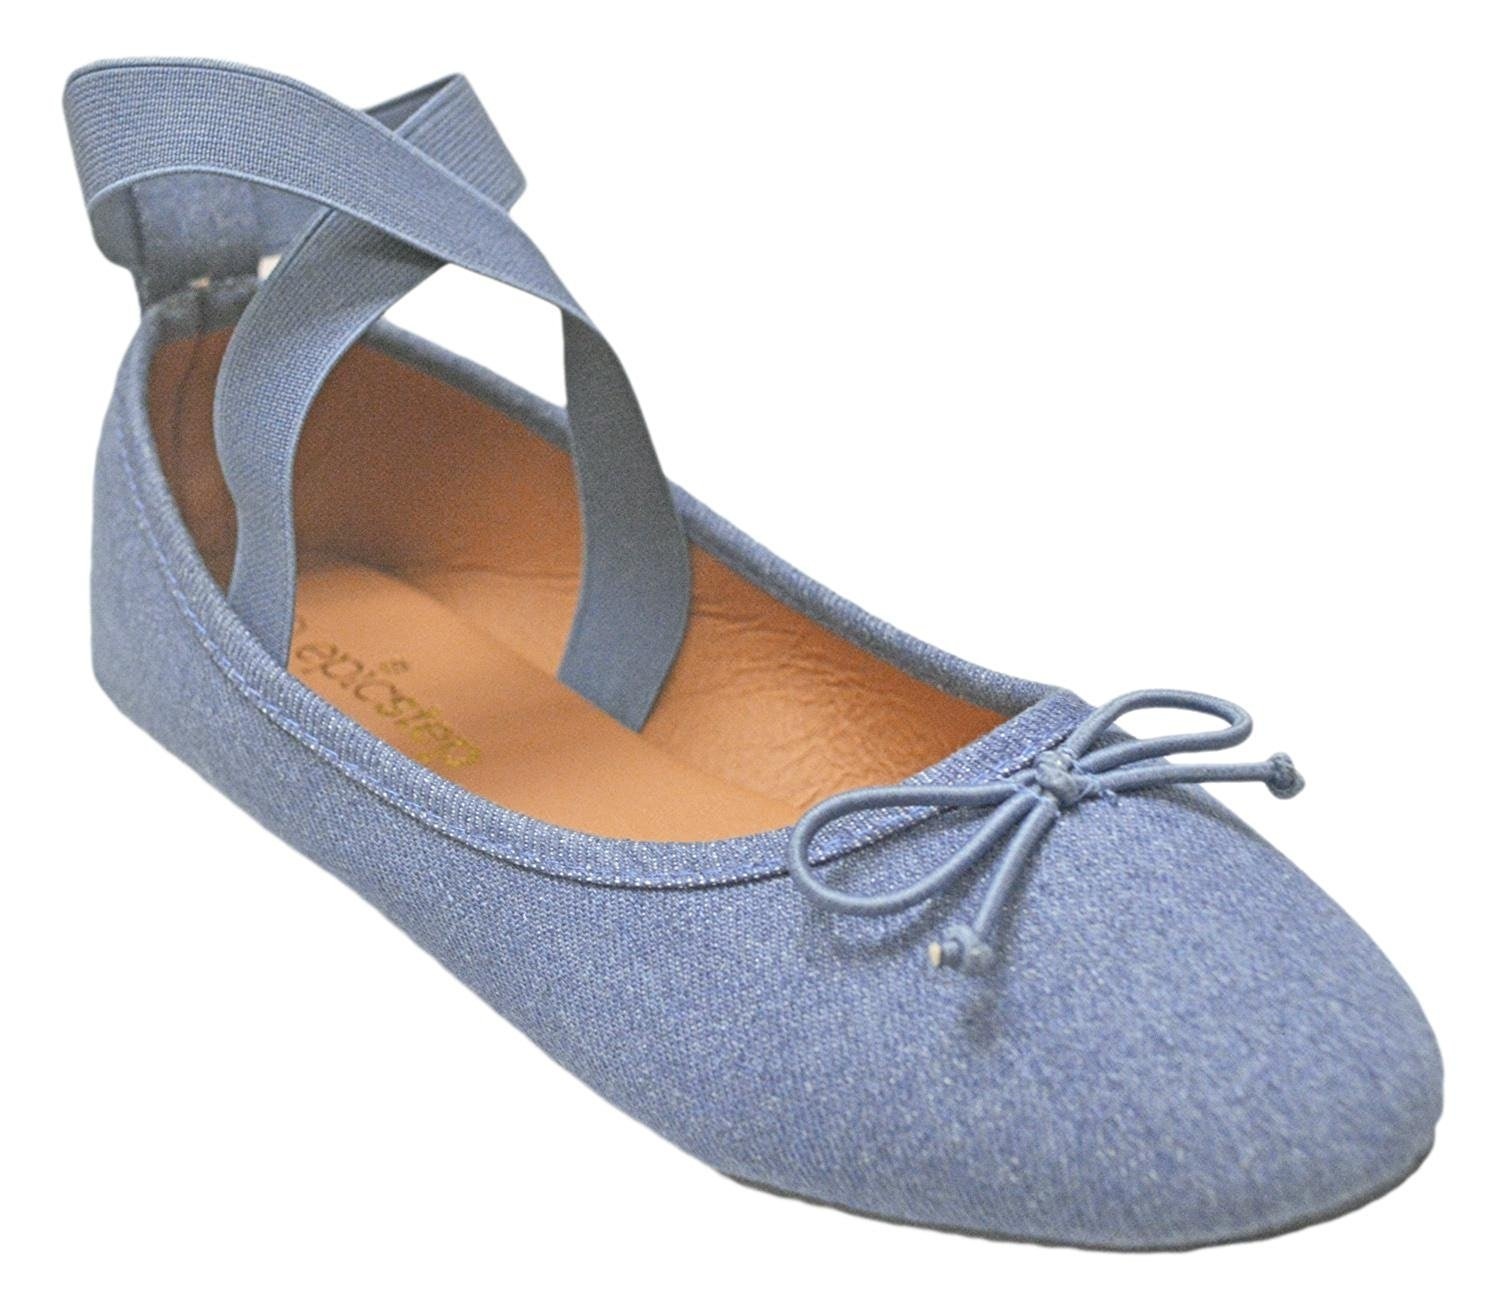 Womens Round Toe Jersey Canvas Soft and Comfortable Basic Canvas Jersey Slip On Ballet Flats Shoes With Bow 94279a